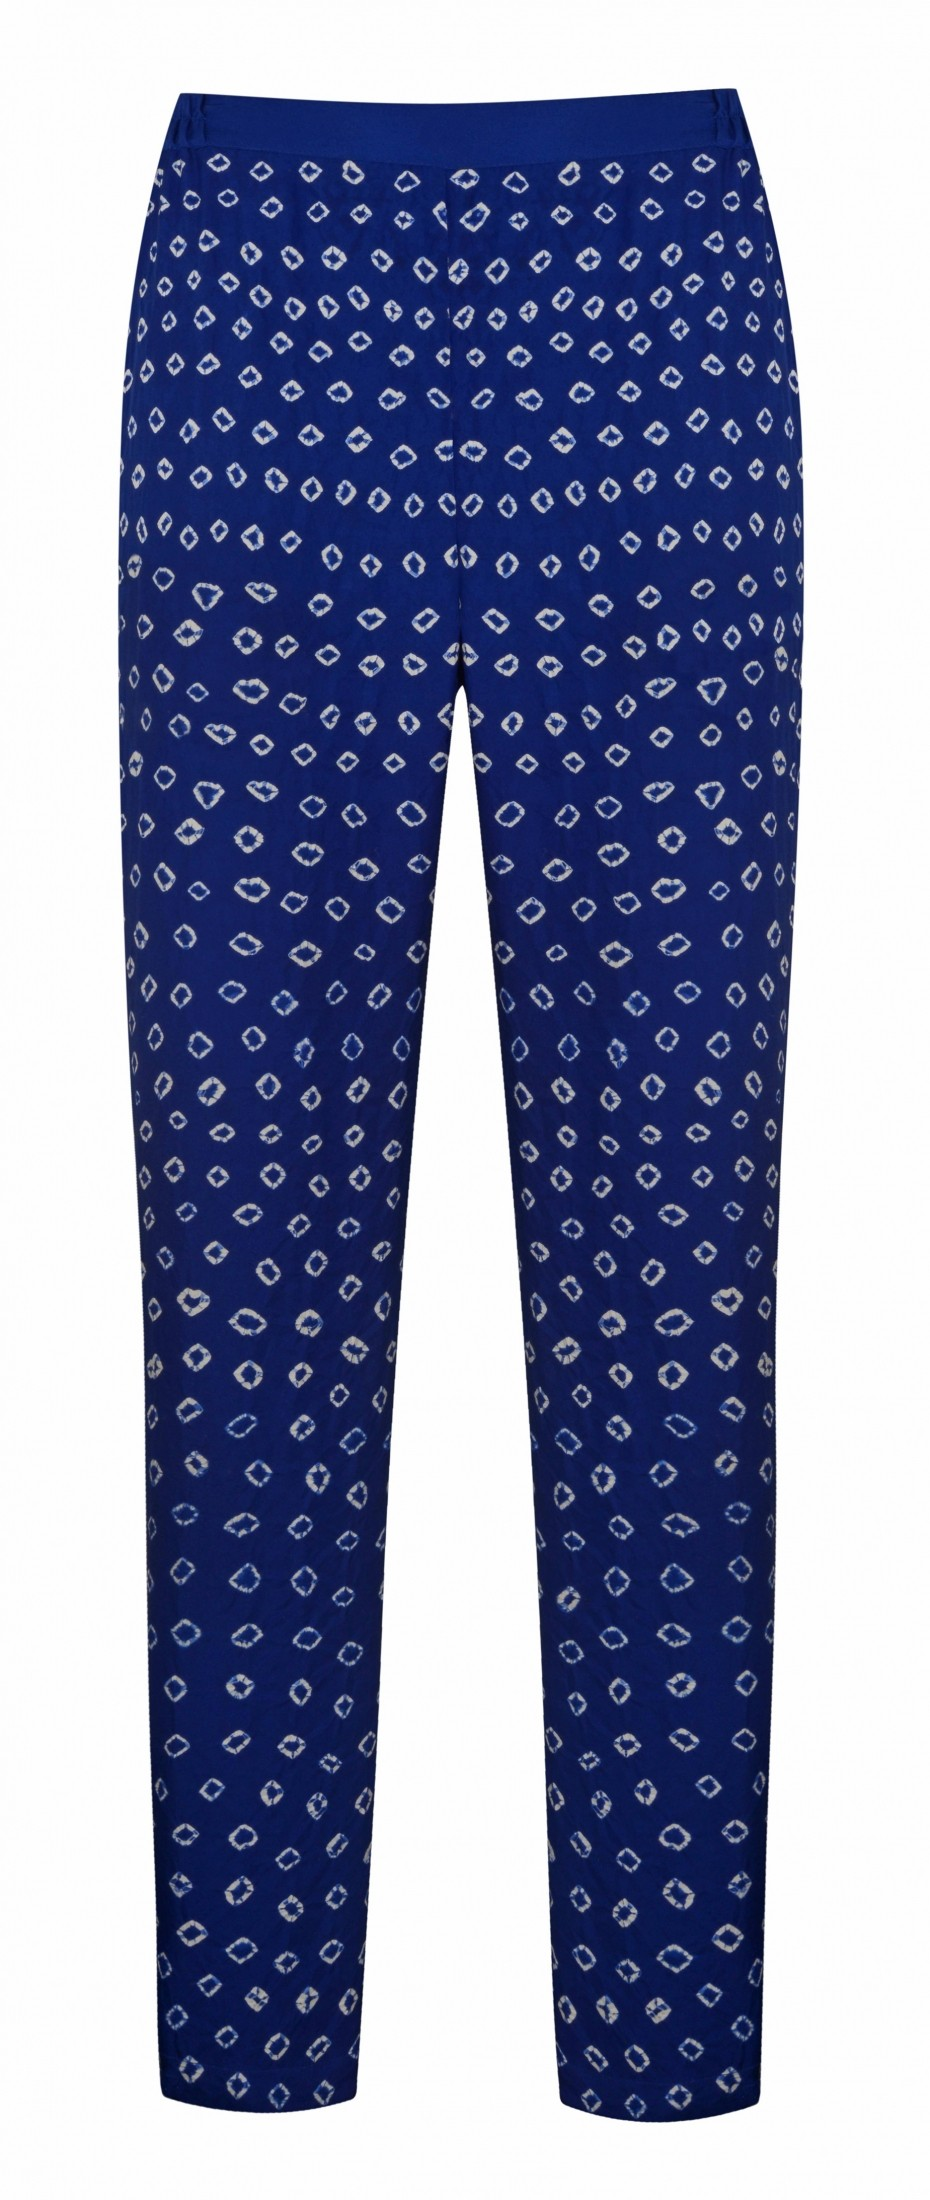 Hilda Trousers – Electric Blue Bandhani Silk